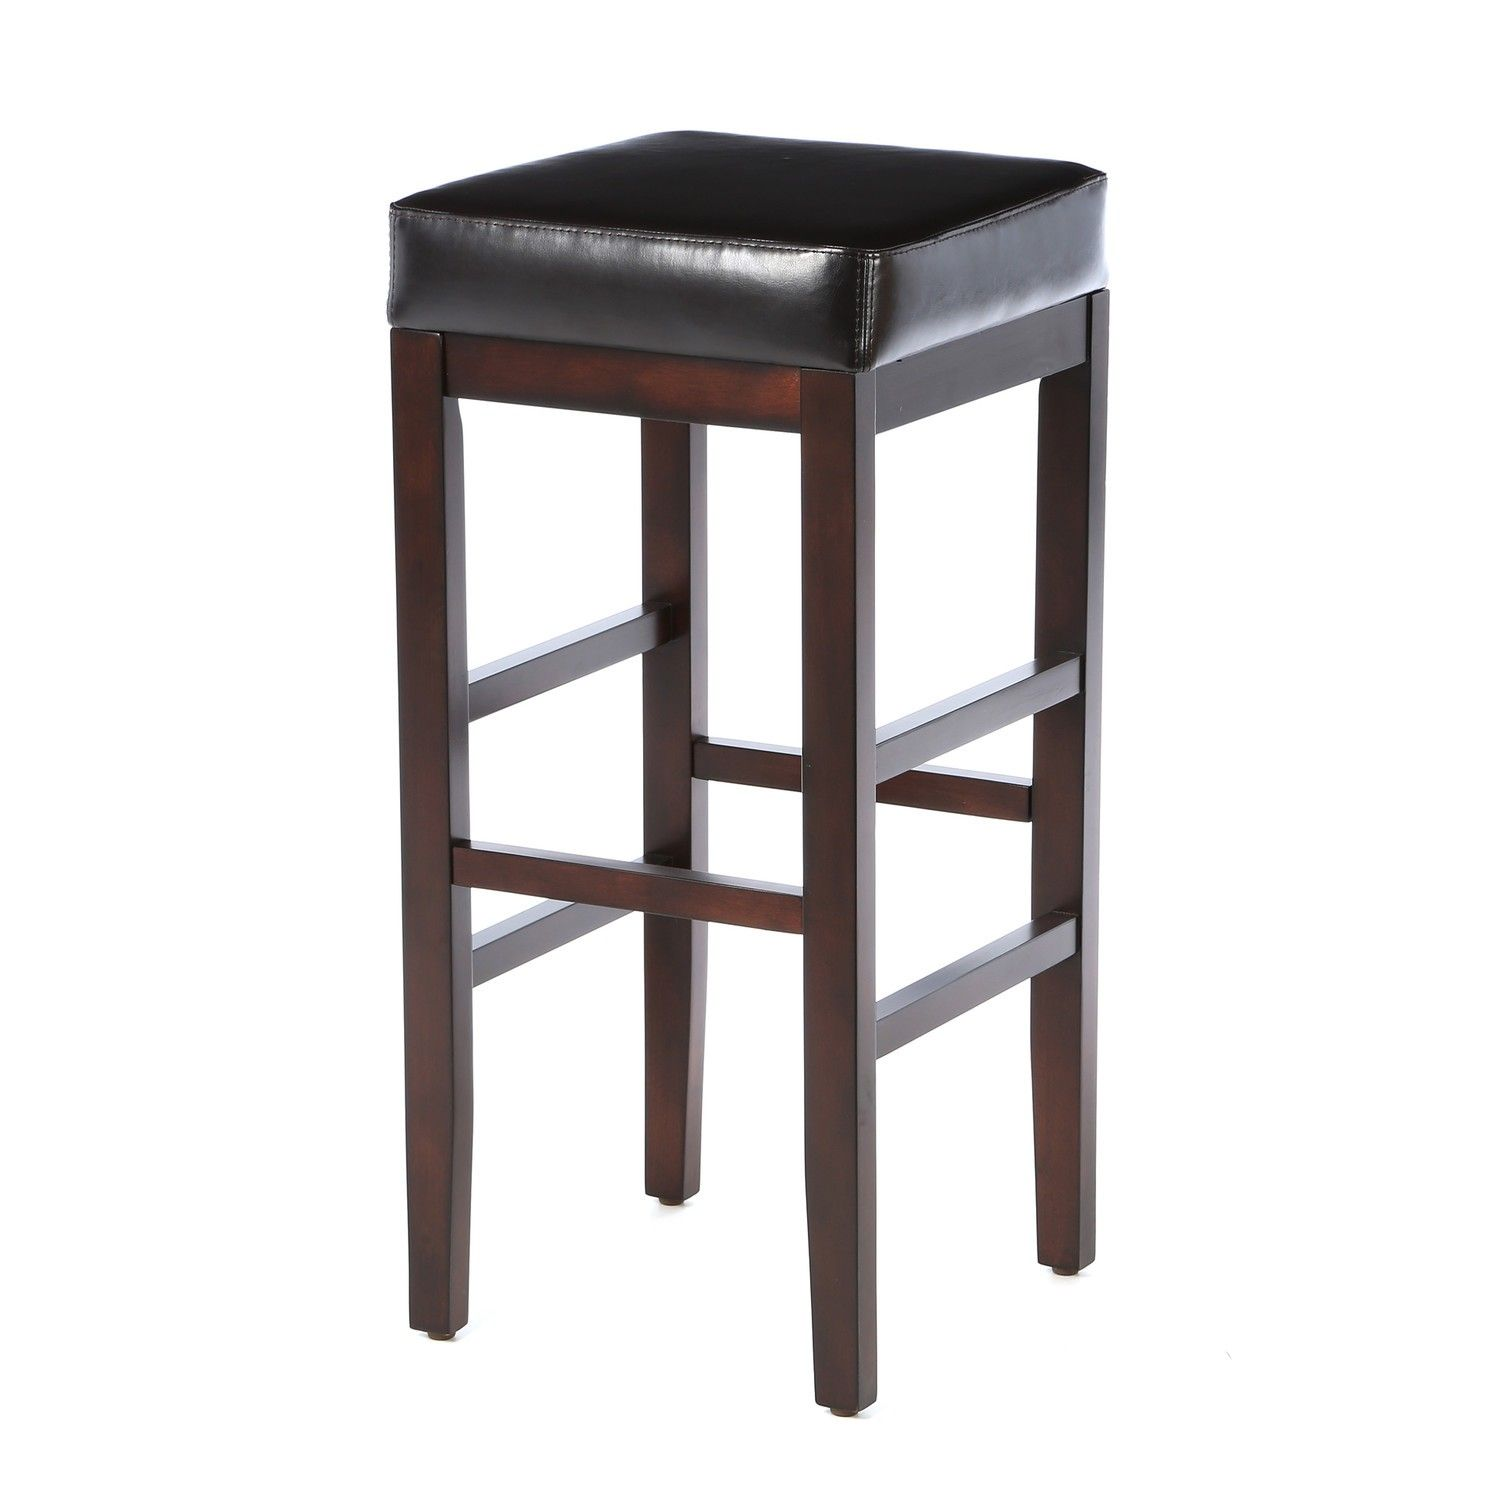 Furniture Square Black Leather Padded Seated Bar Stool